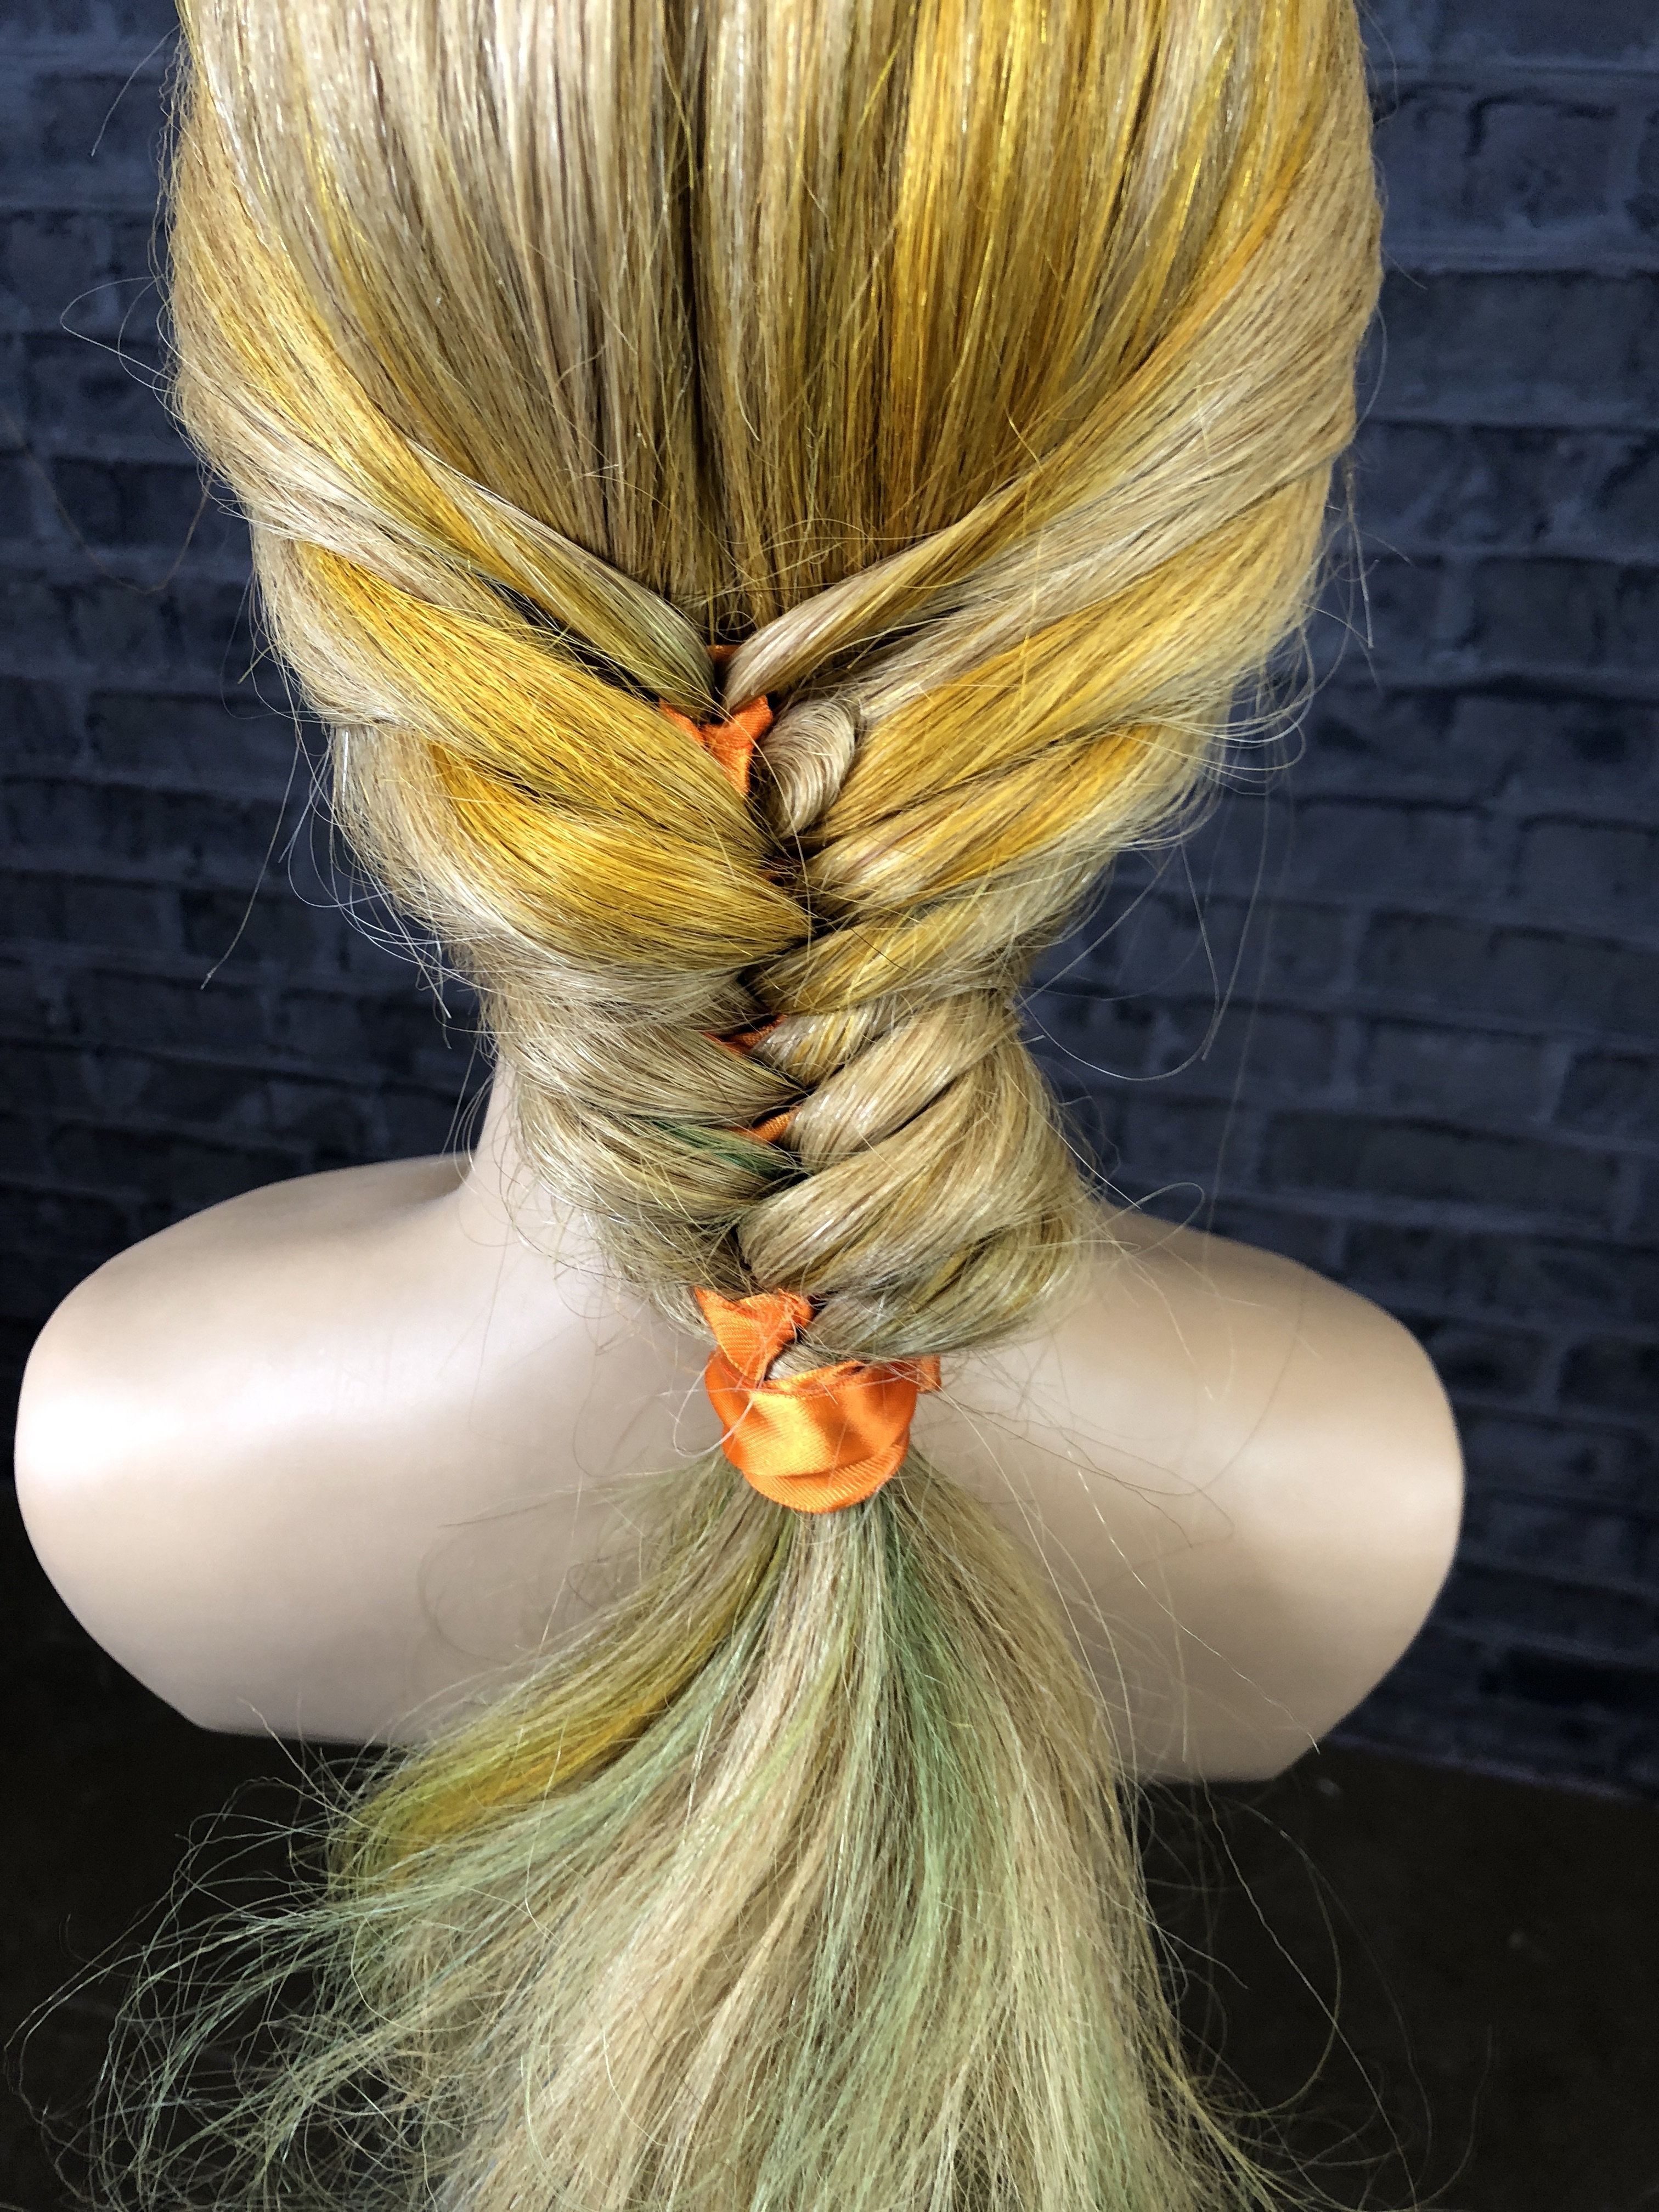 VIDEO HOW-TO: An Incredible Braid - Professional and Breathtaking